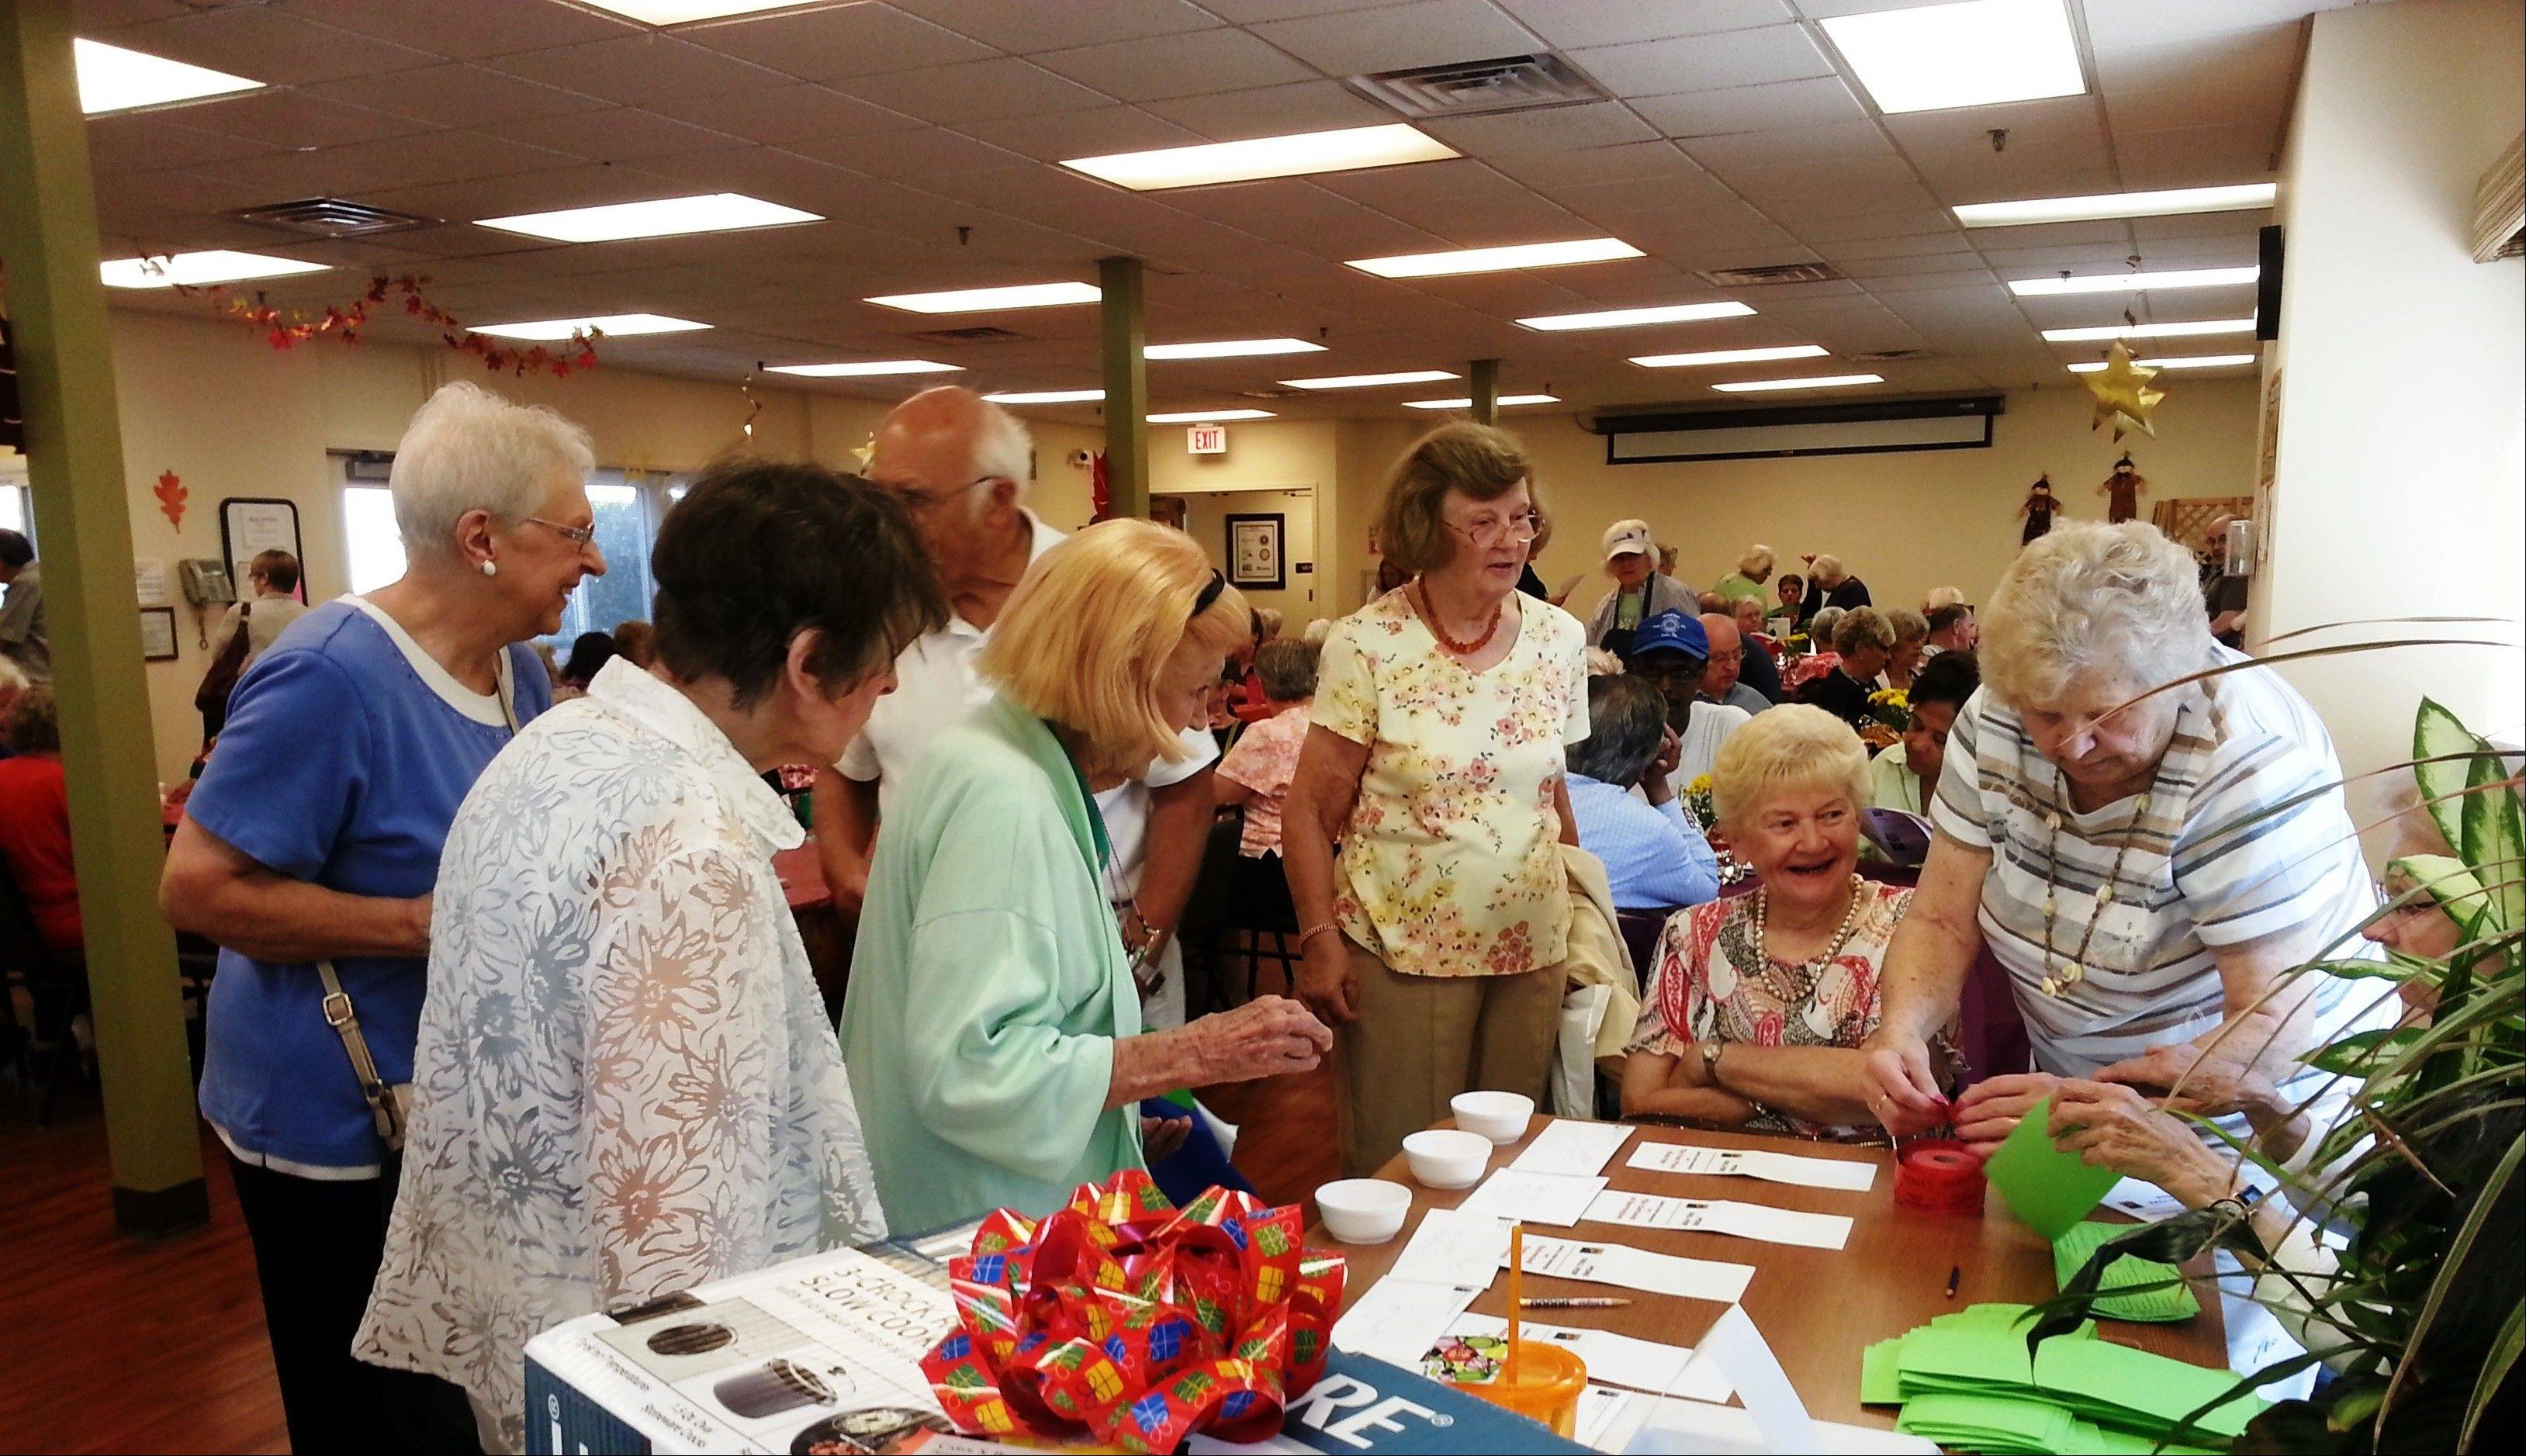 Visitors to the Palatine Township Senior Center Fall Festival visit the raffle table to register for prizes.